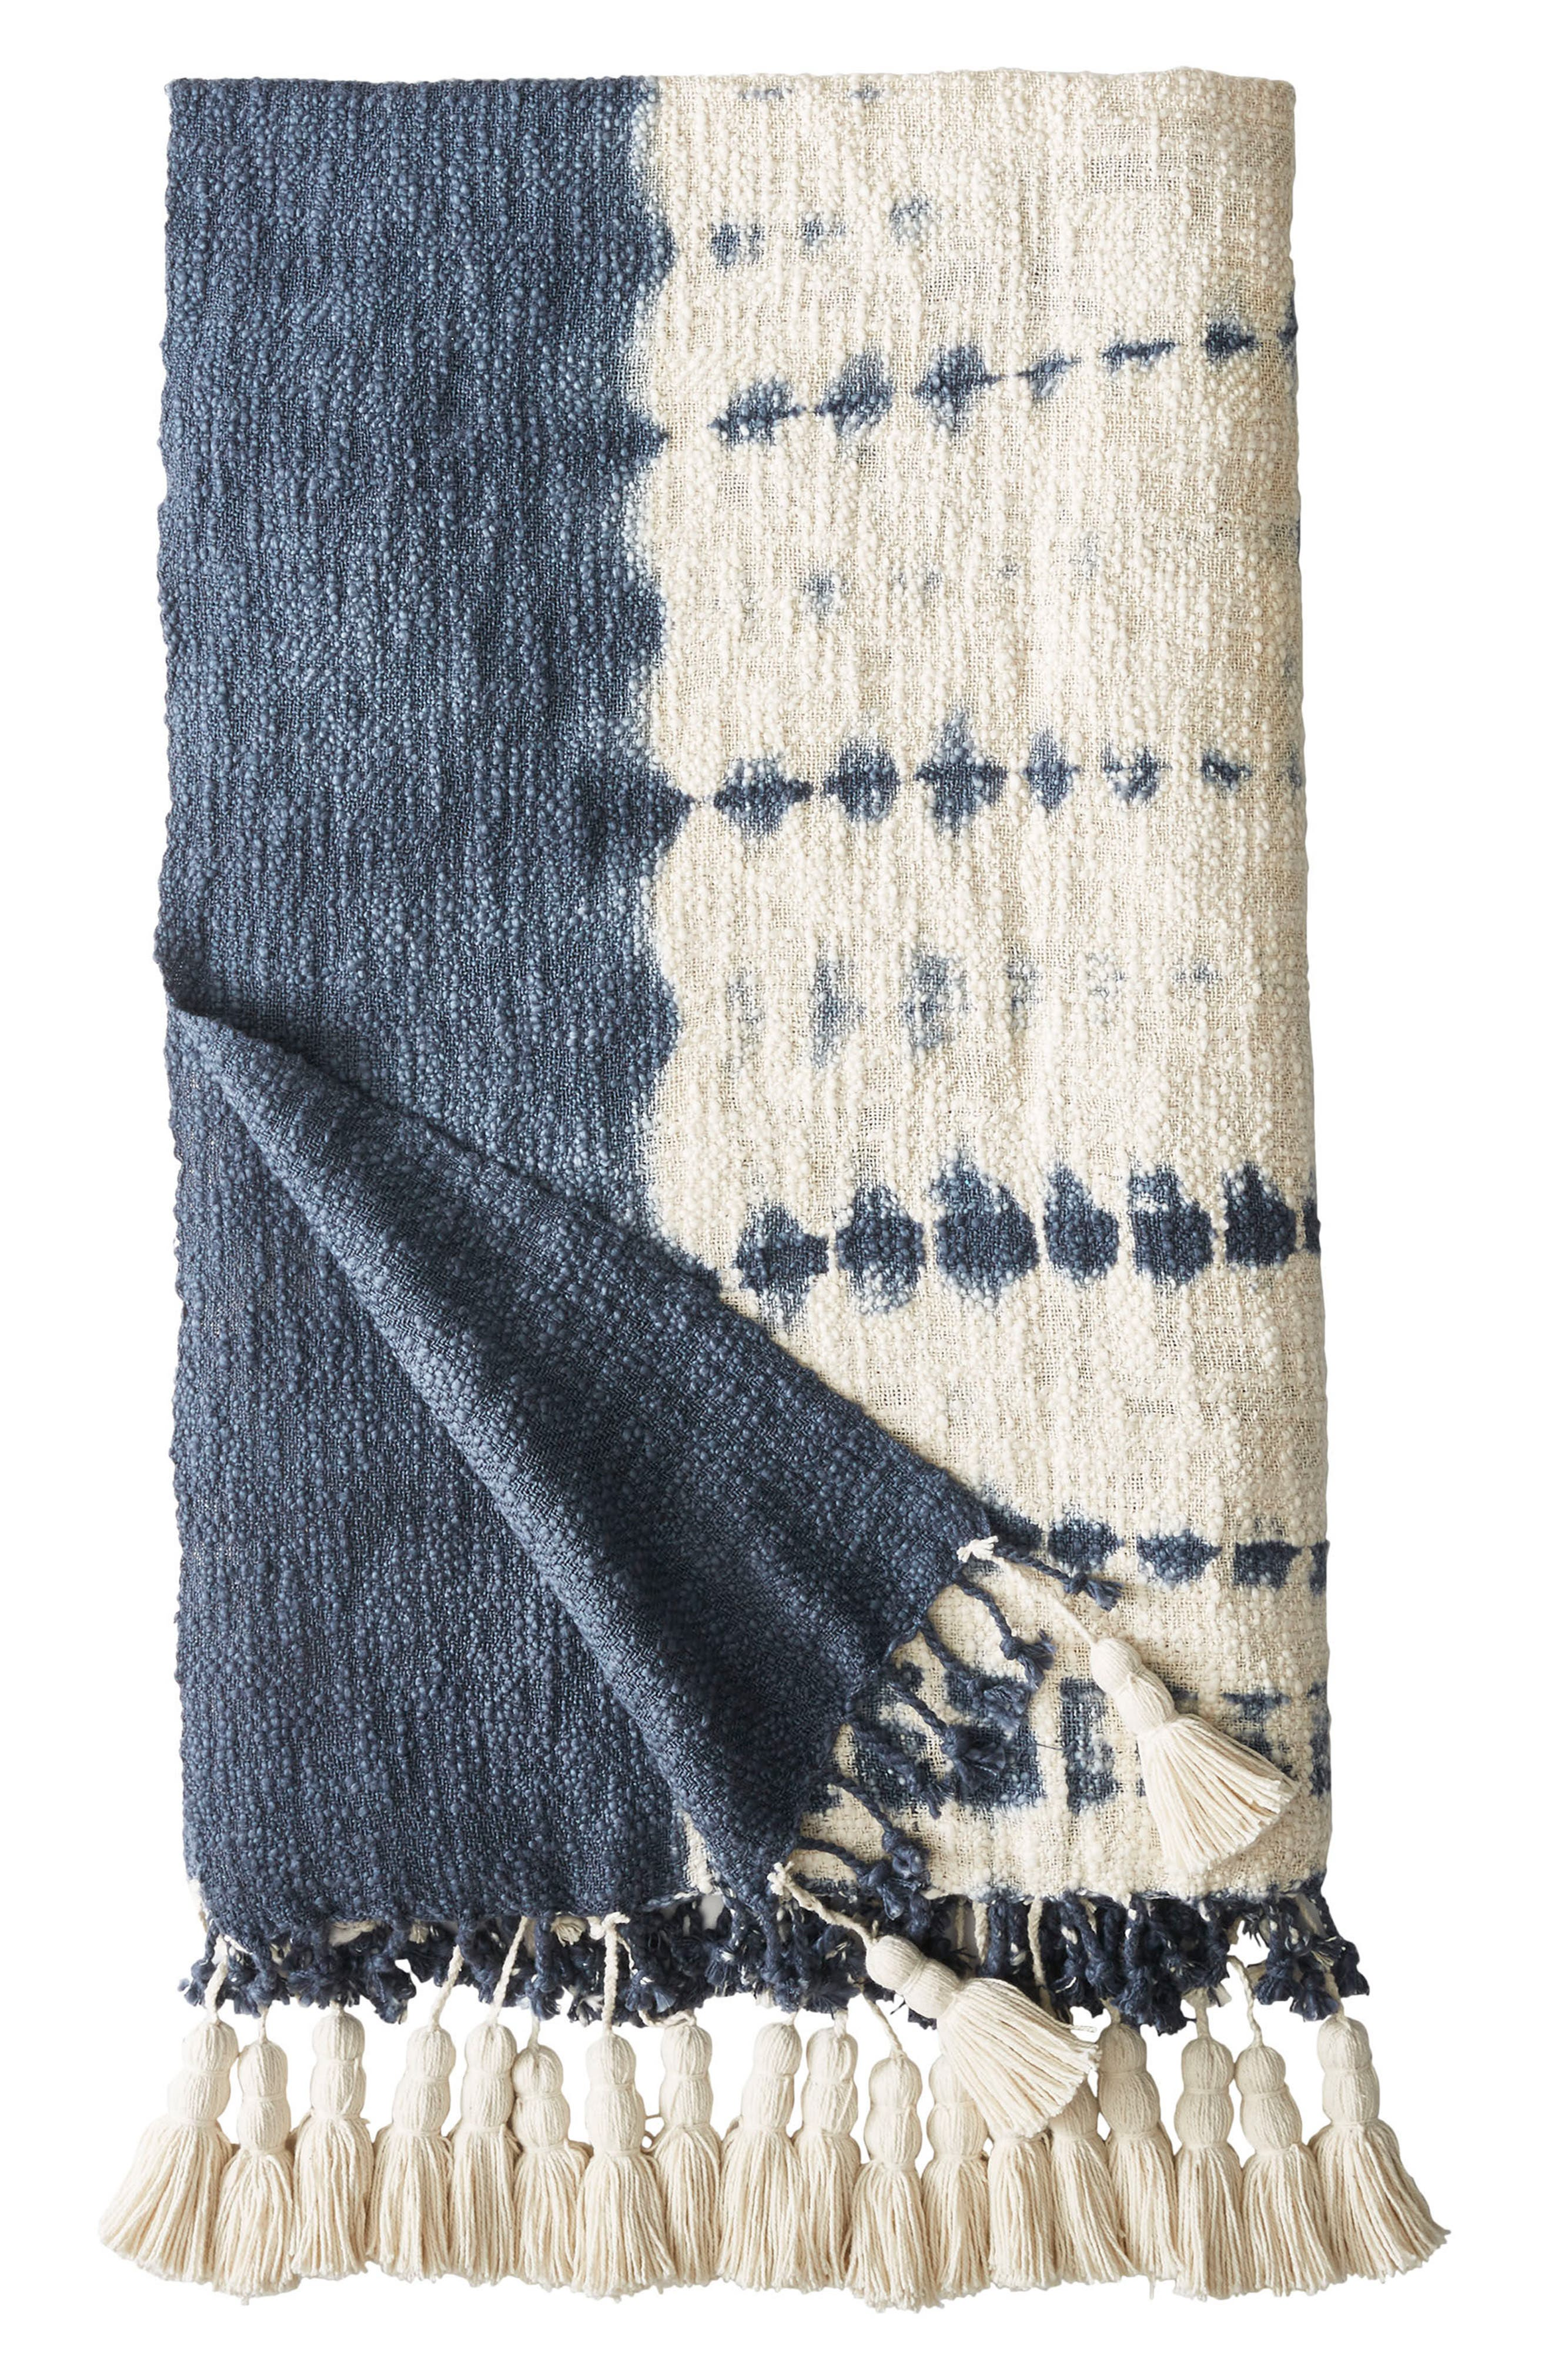 Island Indigo Throw Blanket,                         Main,                         color, Navy/ Cream